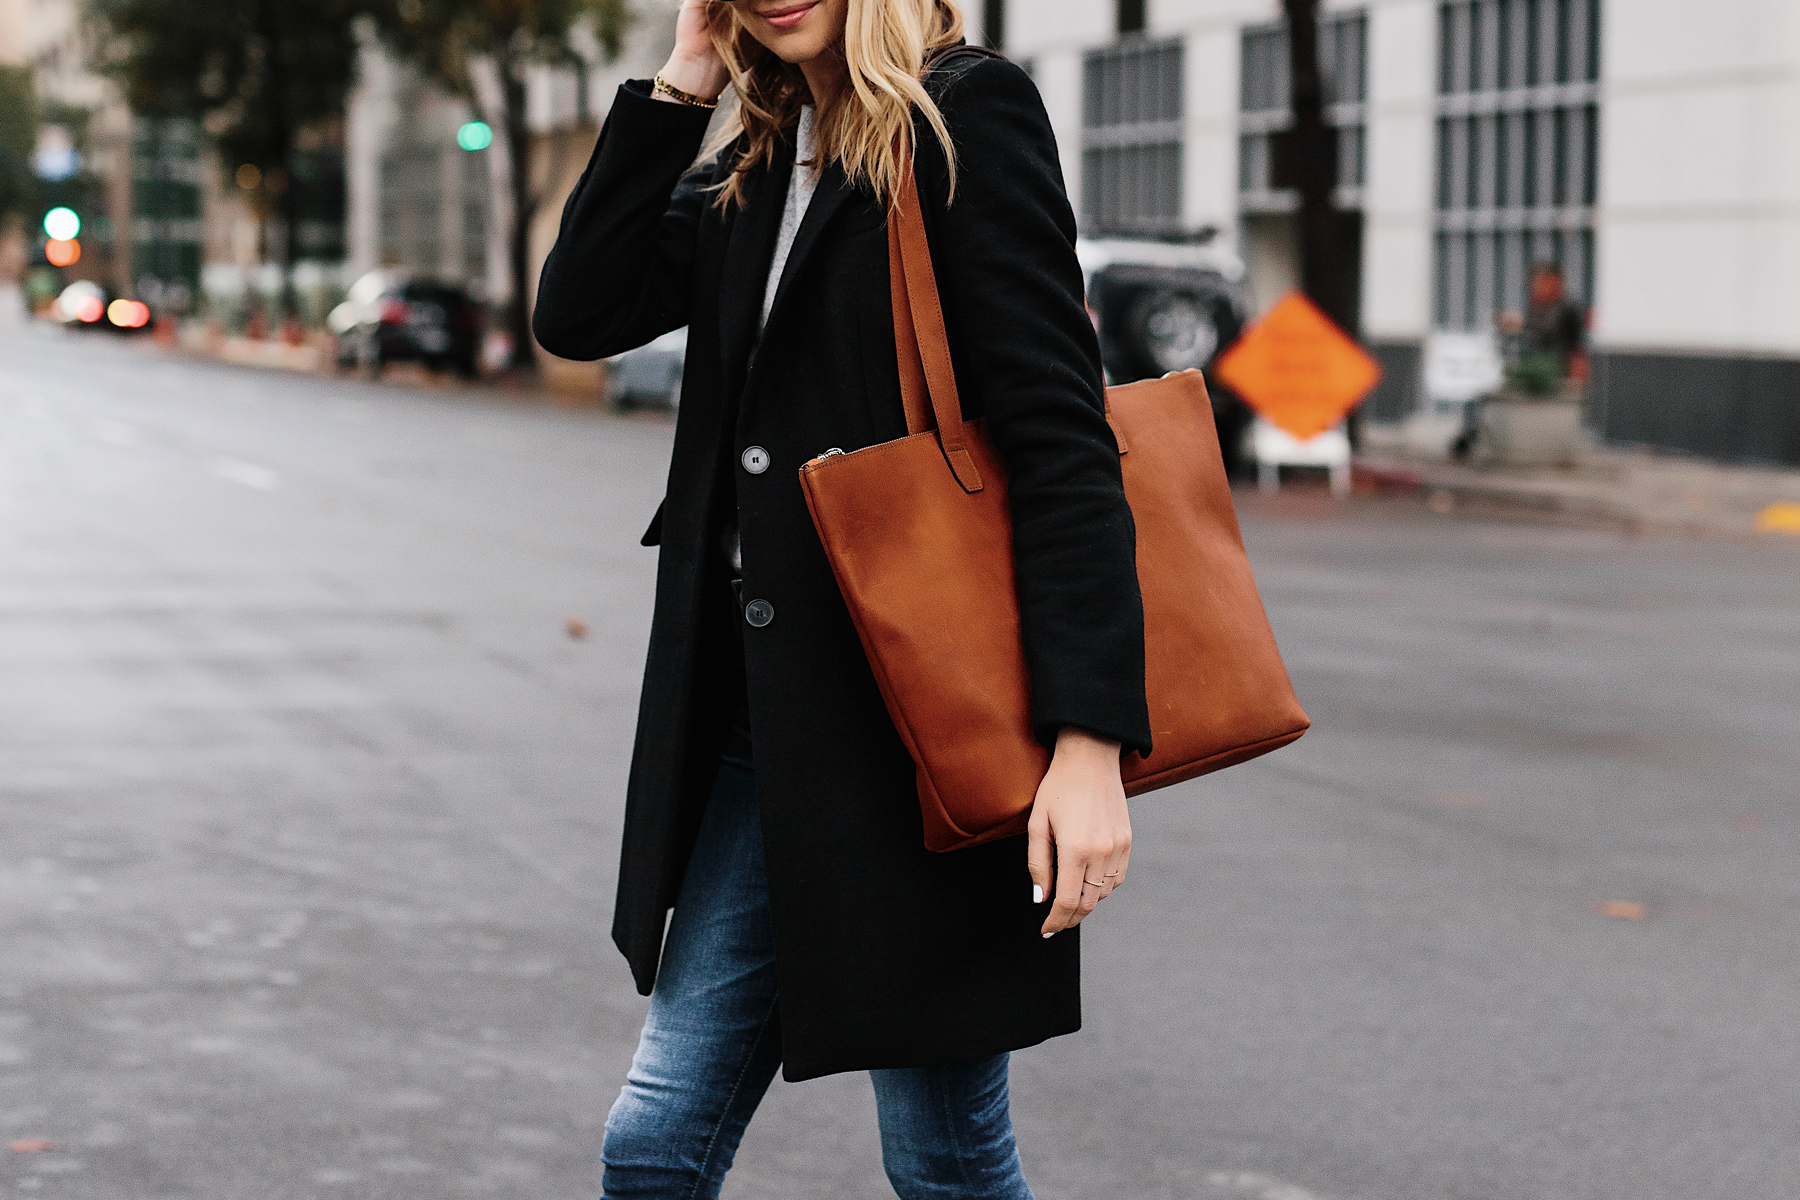 Blonde Woman Wearing SLATE Cognac Tote Black Wool Coat Denim Skinny Jeans Outfit Fashion Jackson San Diego Fashion Blogger Street Style